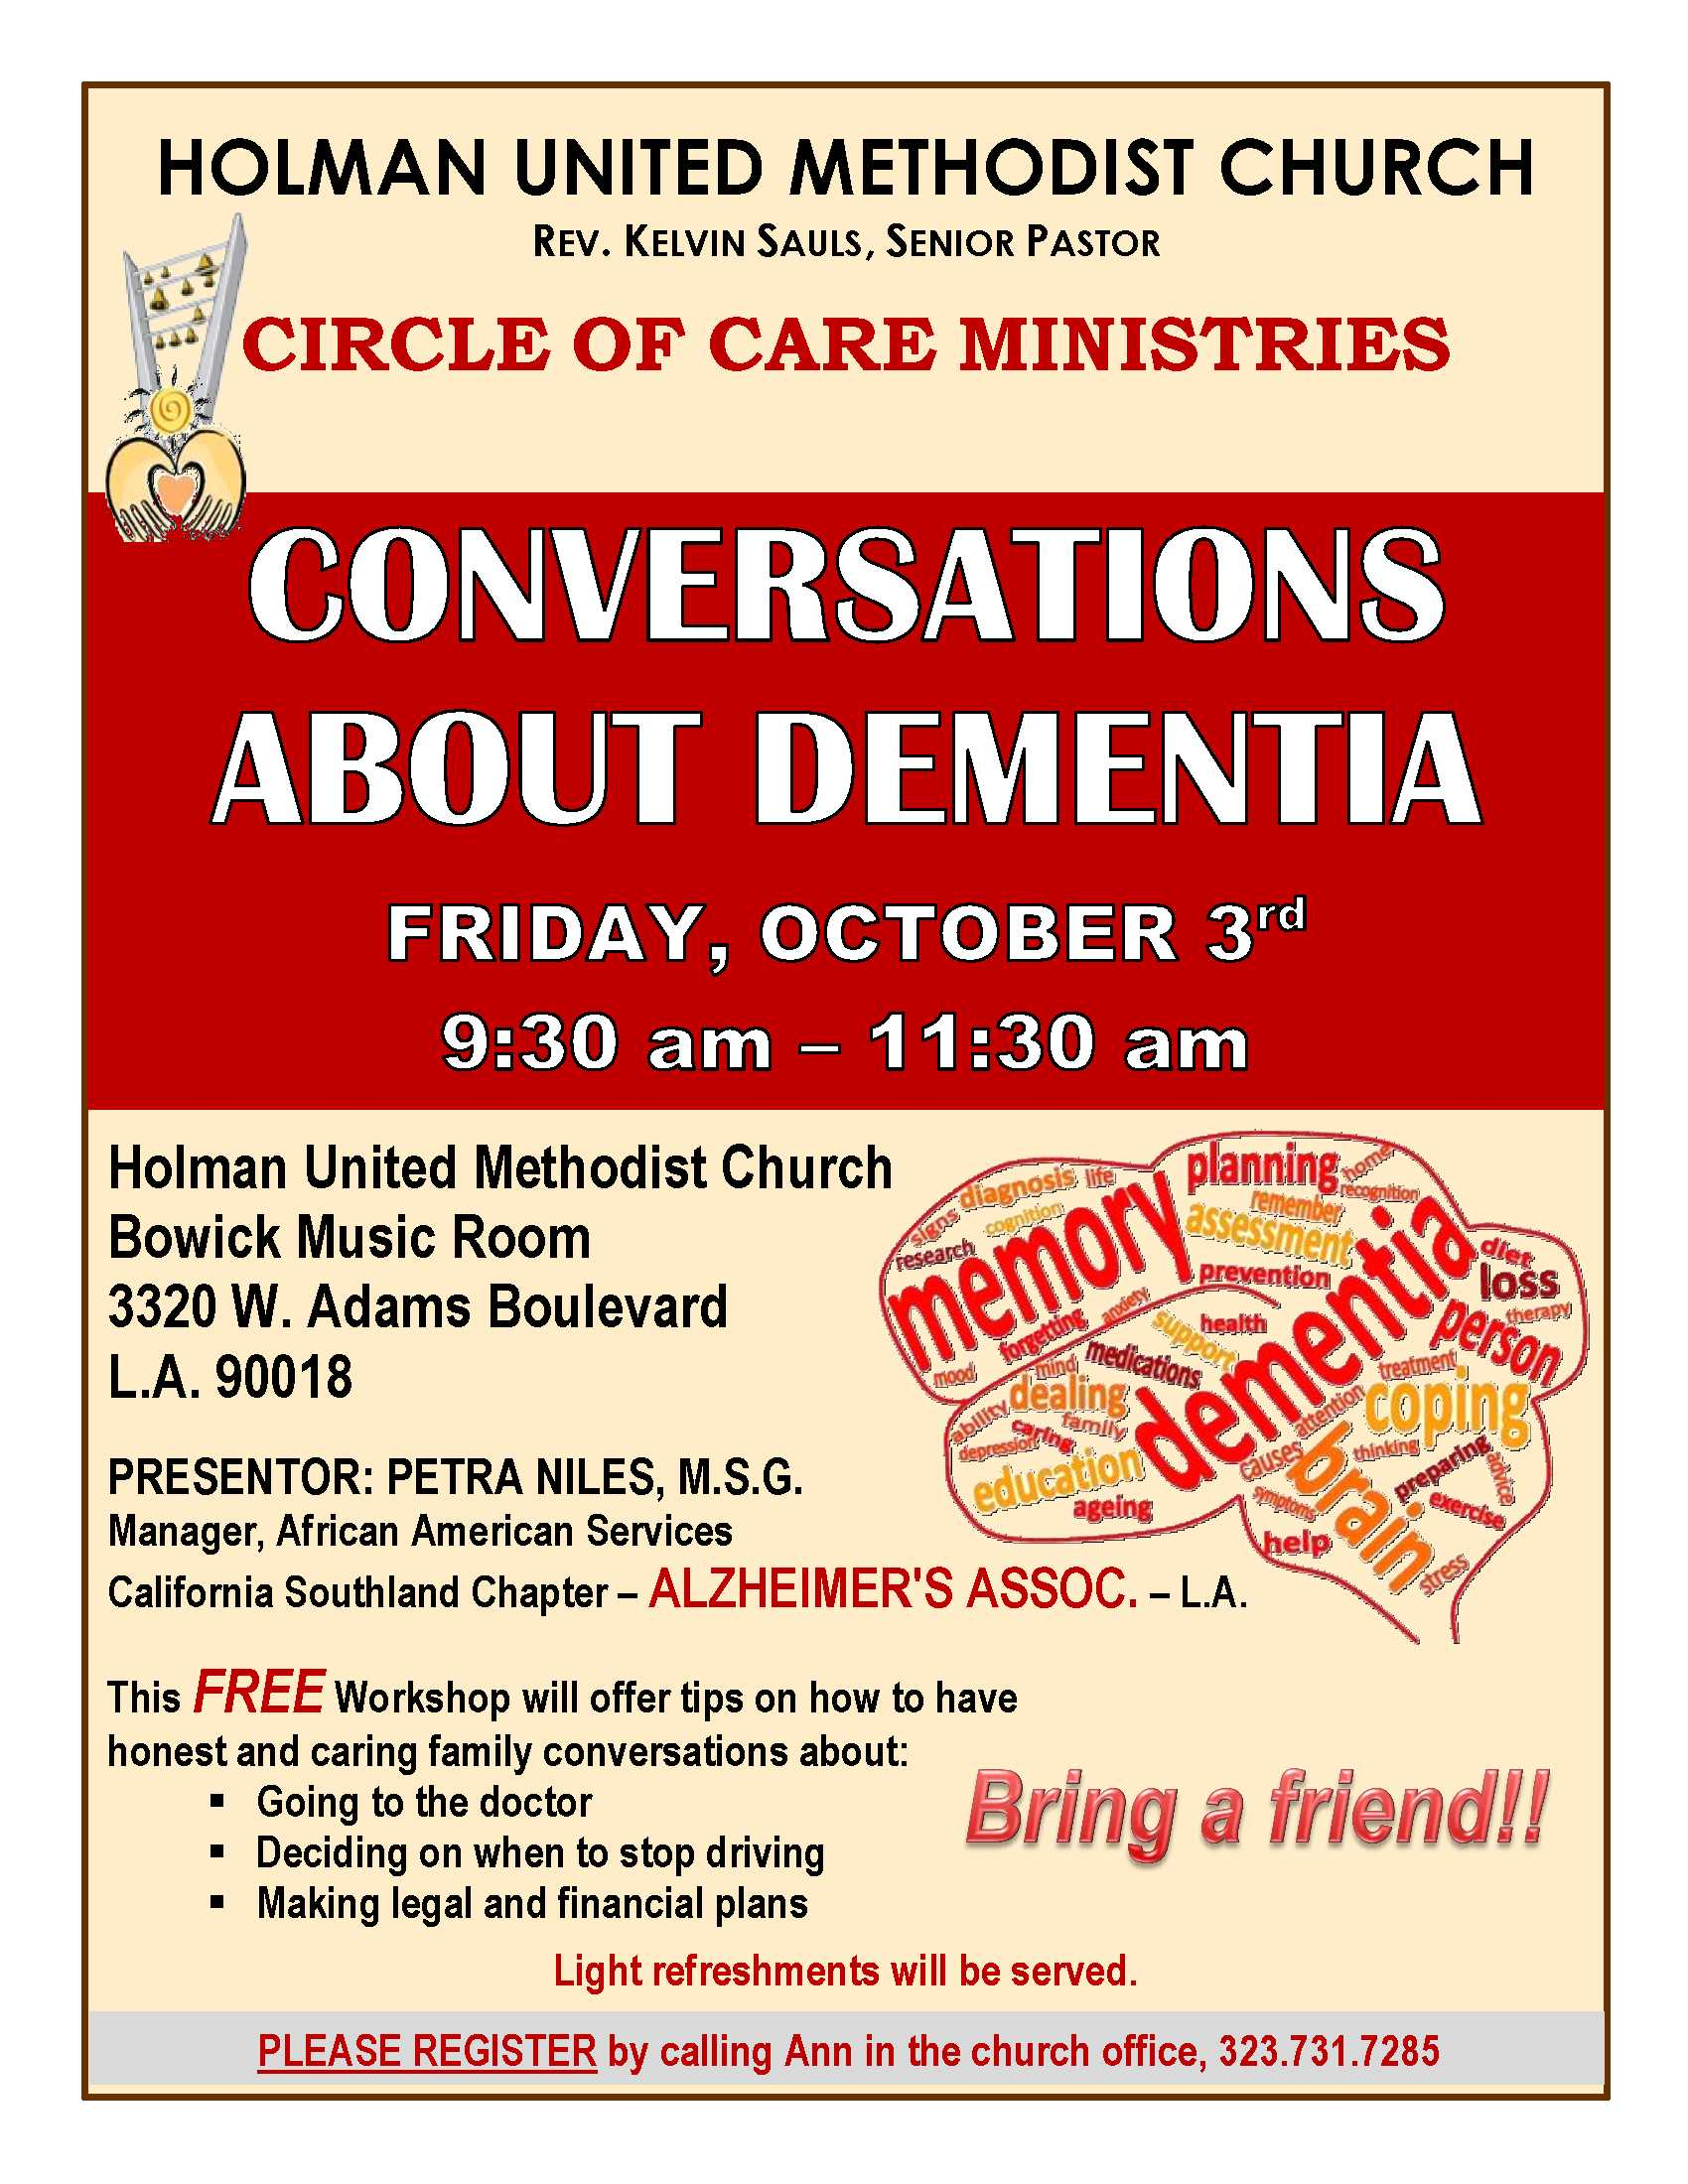 DEMENTIA WORKSHOP FLYER - 2014-01-03